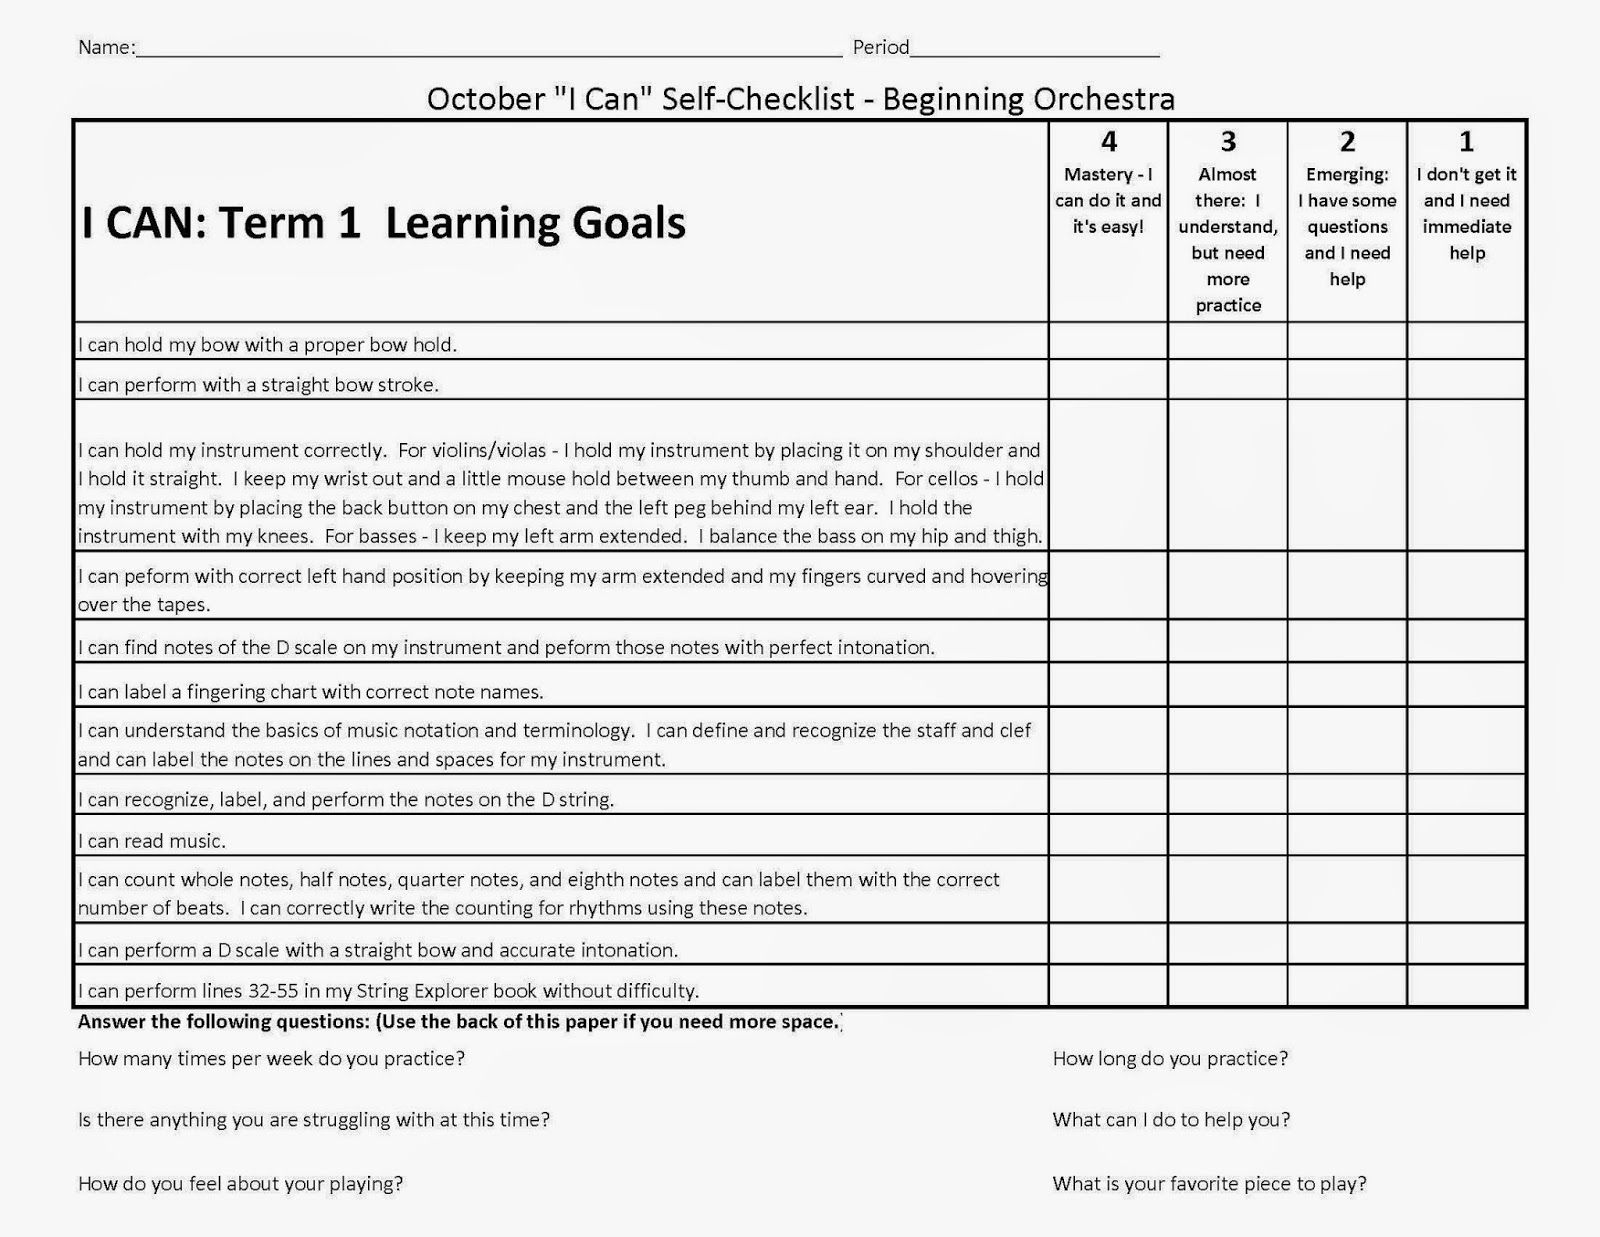 worksheet Band Worksheets orchestra classroom ideas beginning self assessment using i can statements